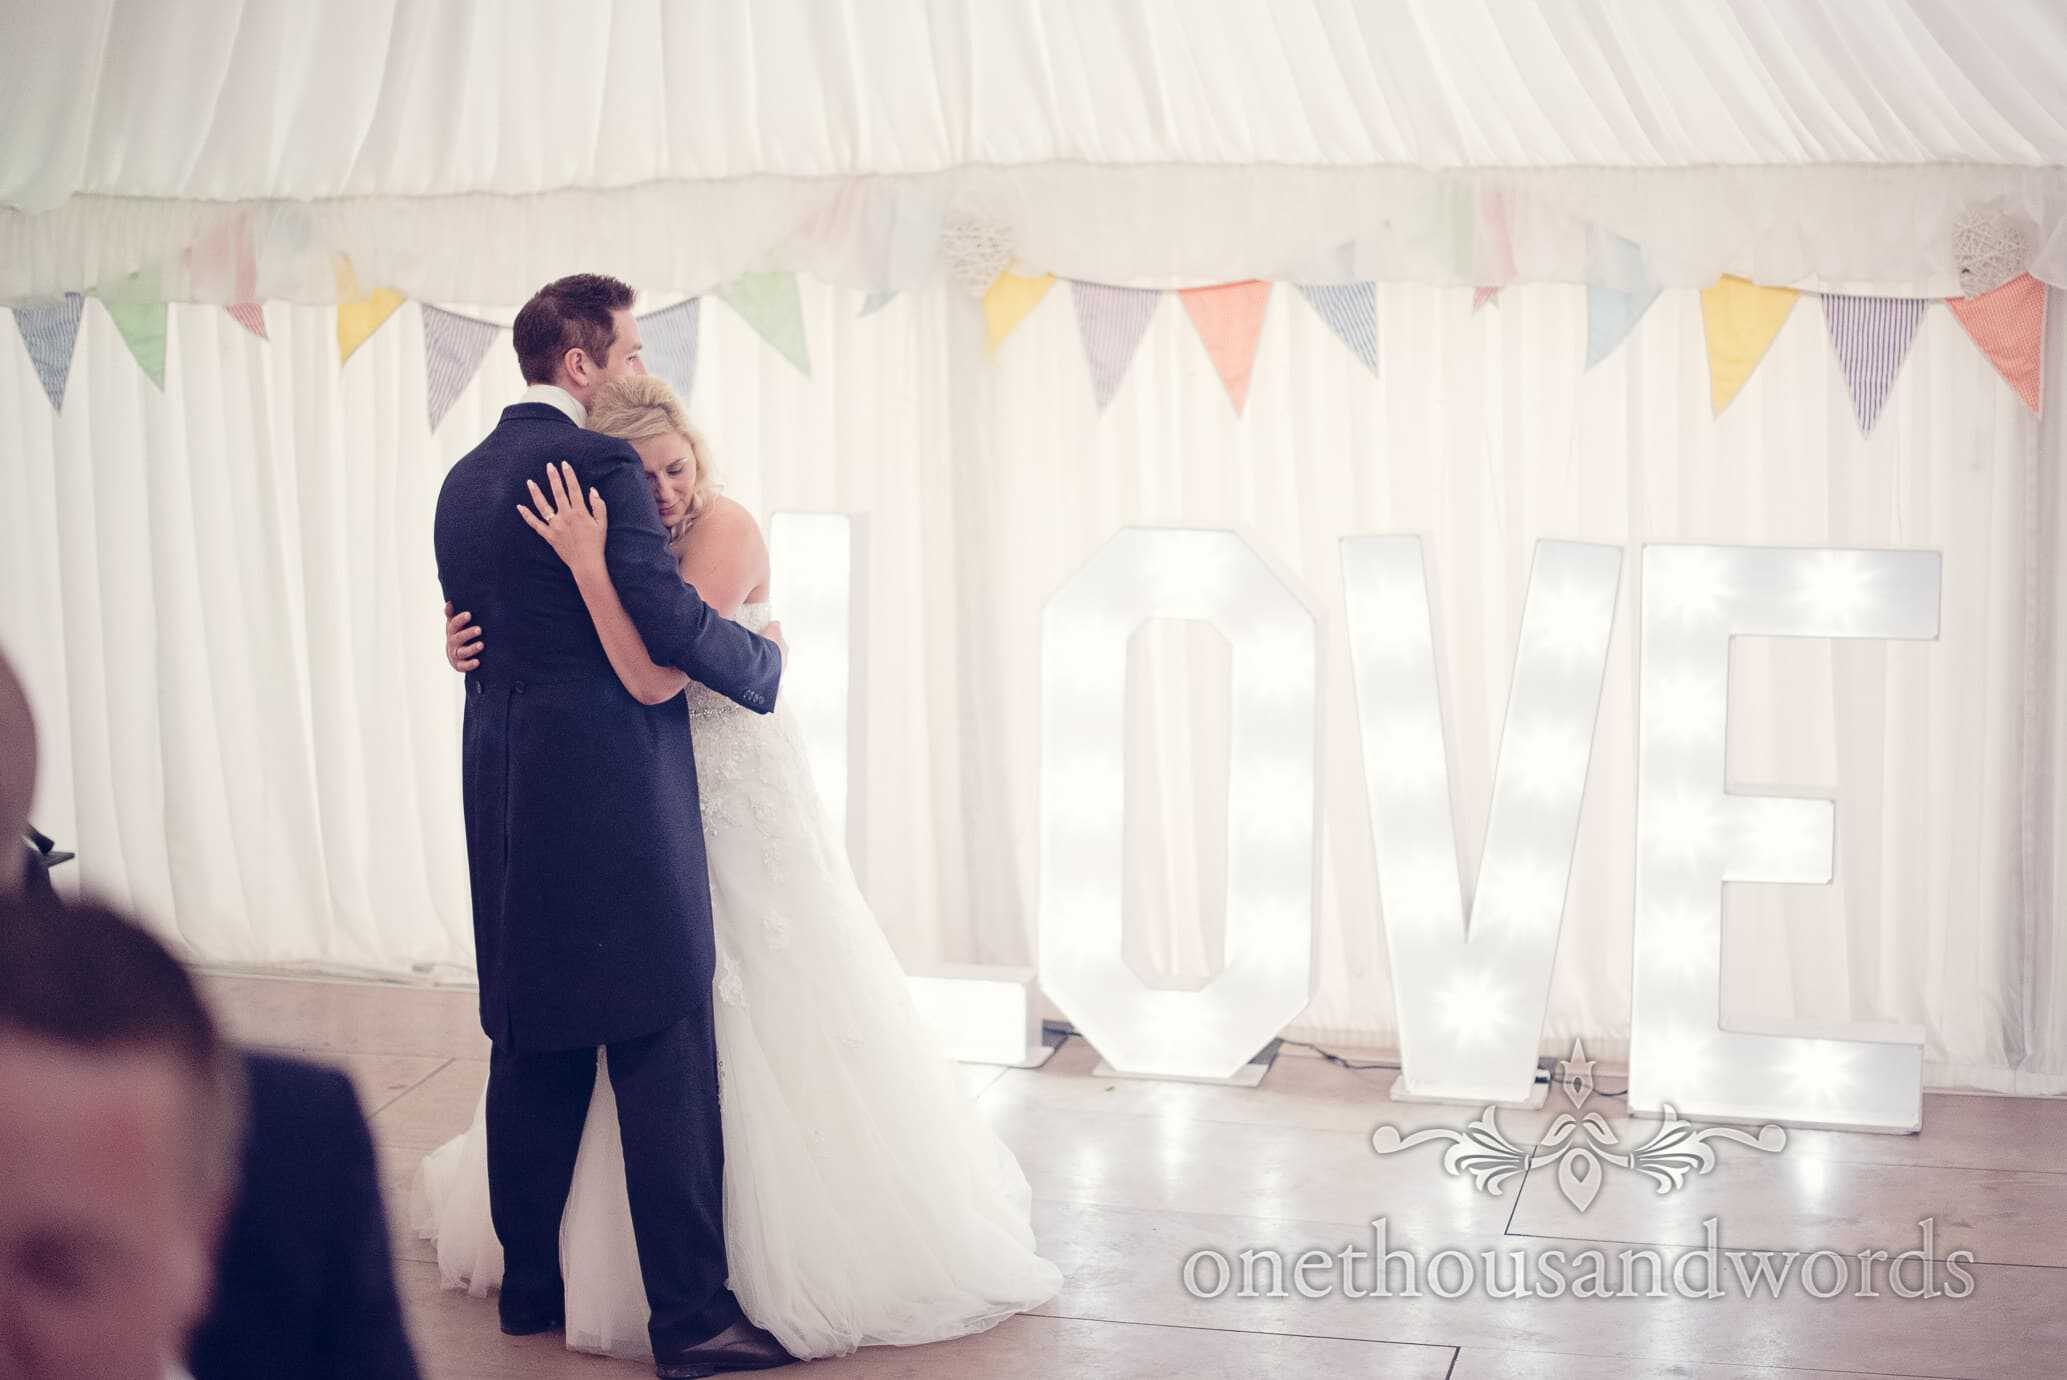 Bride and groom with love sign and wedding bunting dancing